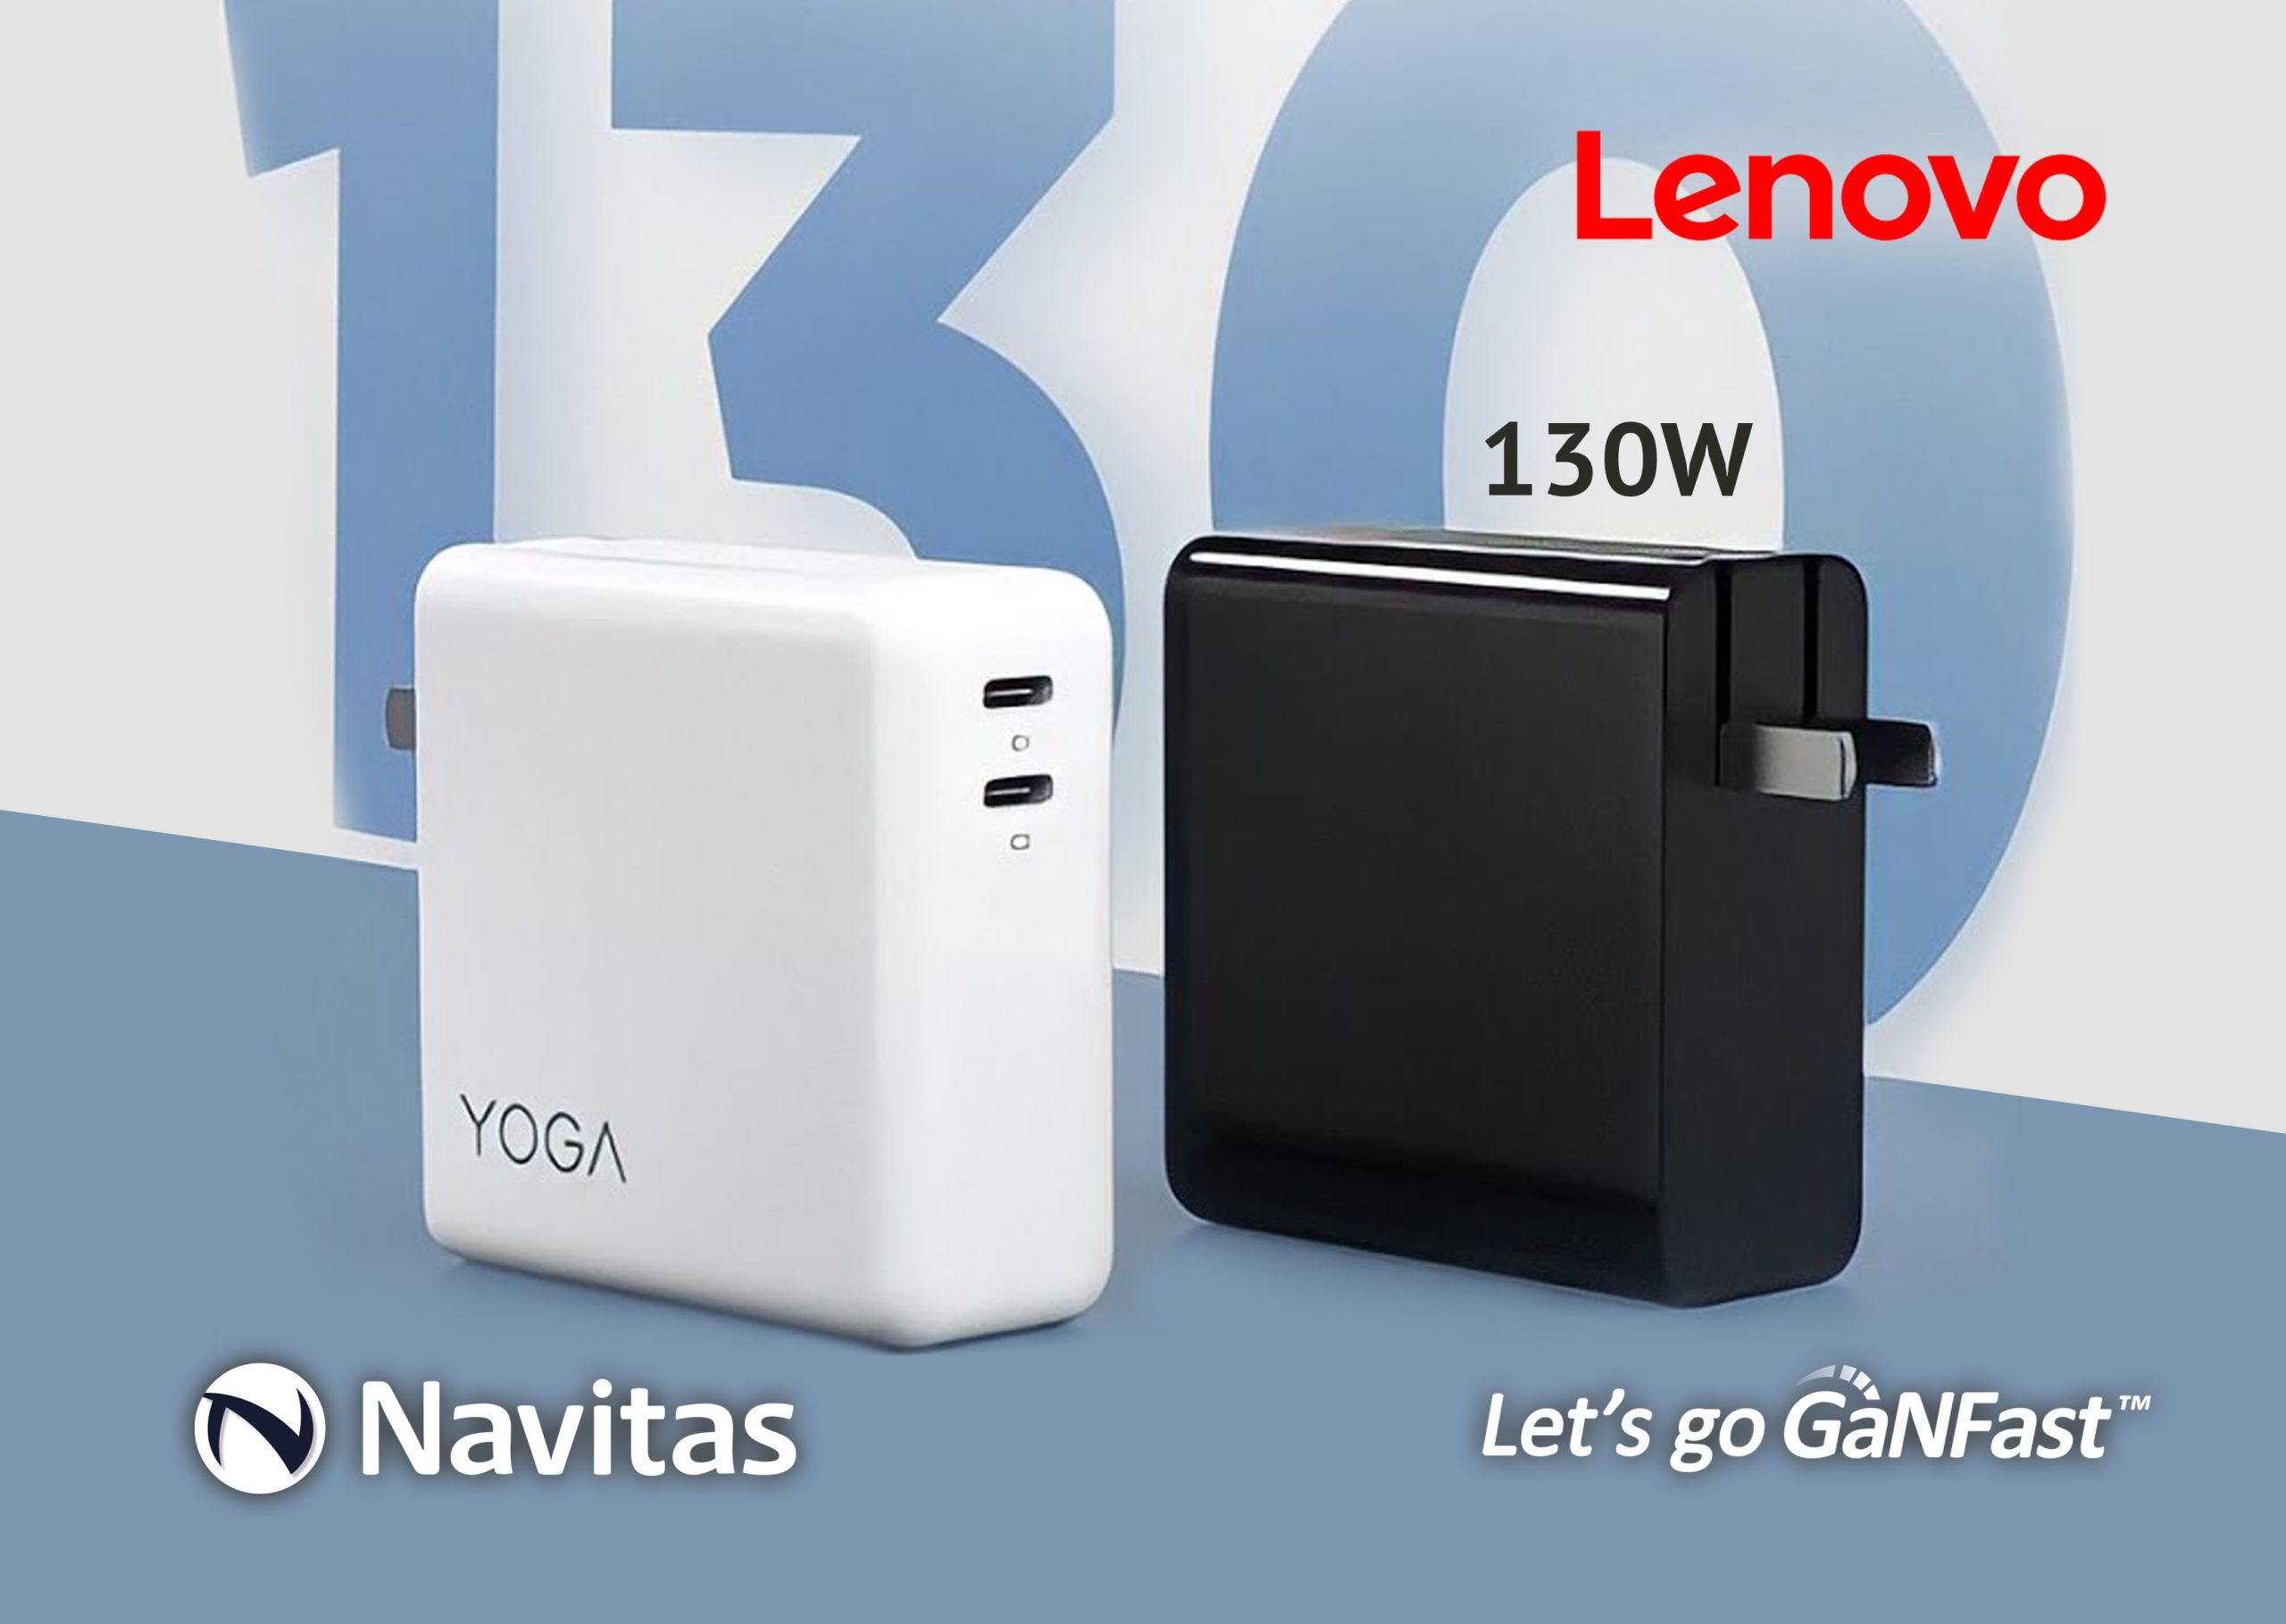 Navitas and Lenovo Partner for the 5th Time with GaNFast™ Charging